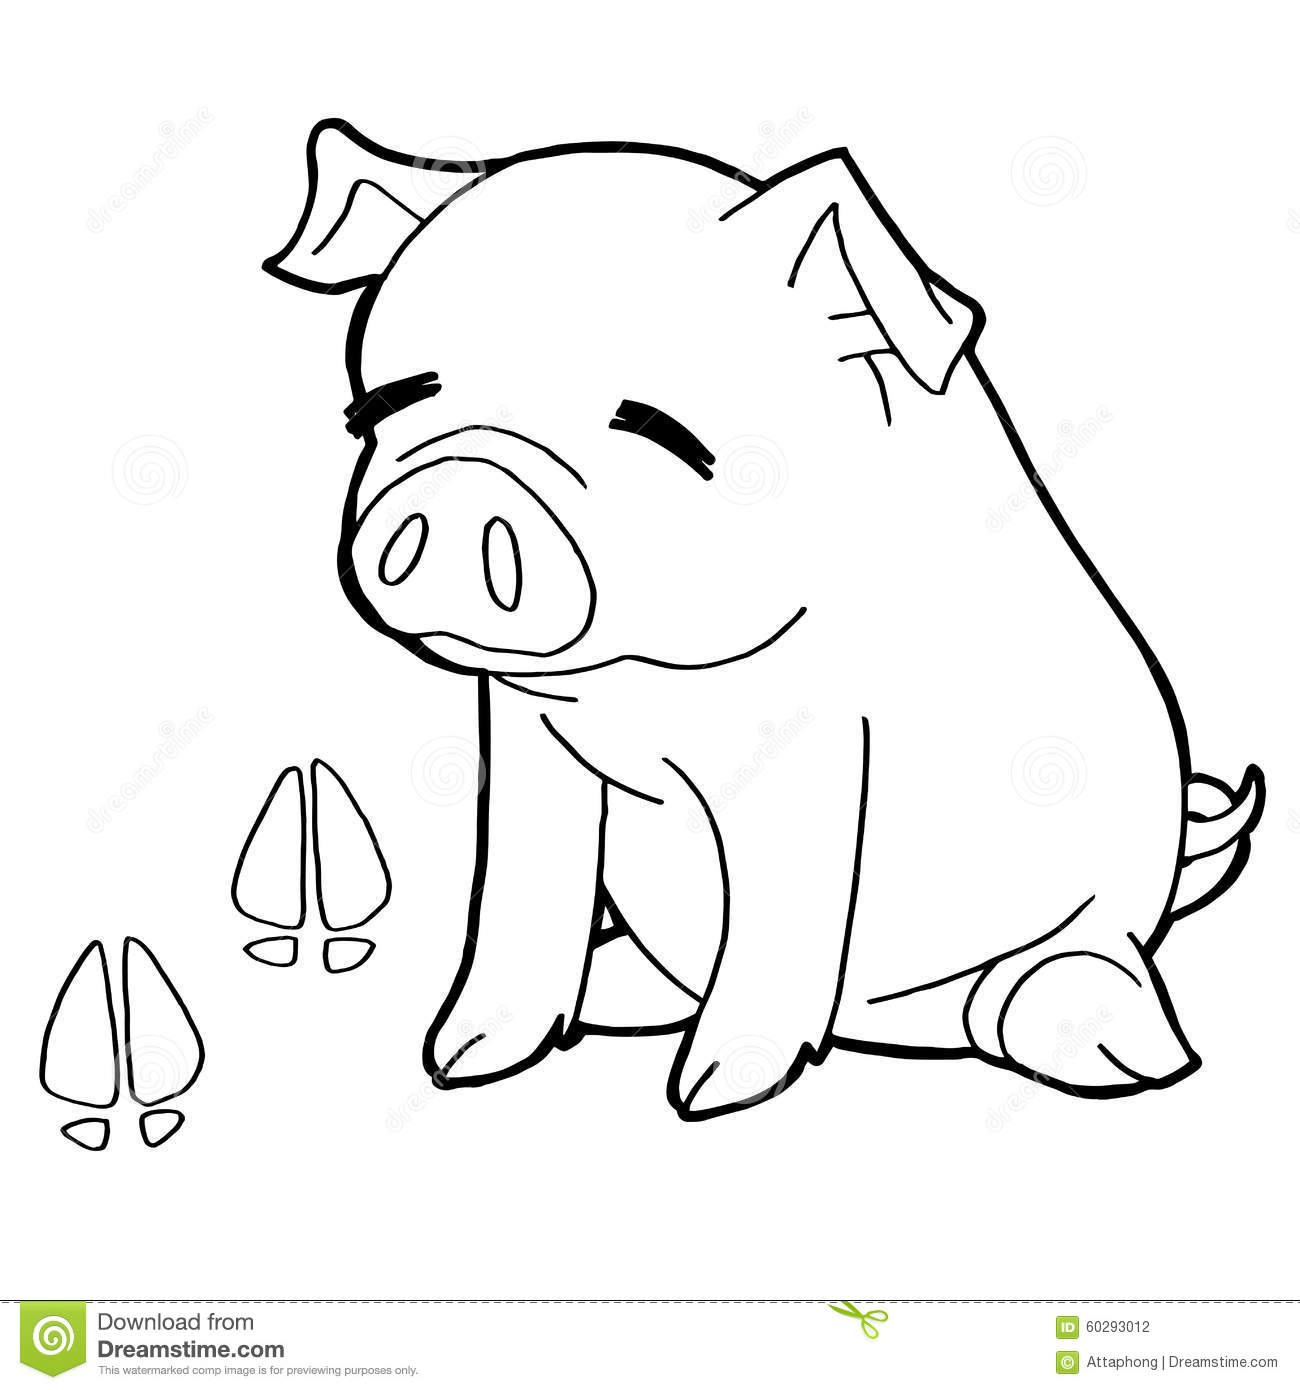 Pig With Paw Print Coloring Pages Vector Stock Vector - Illustration ...